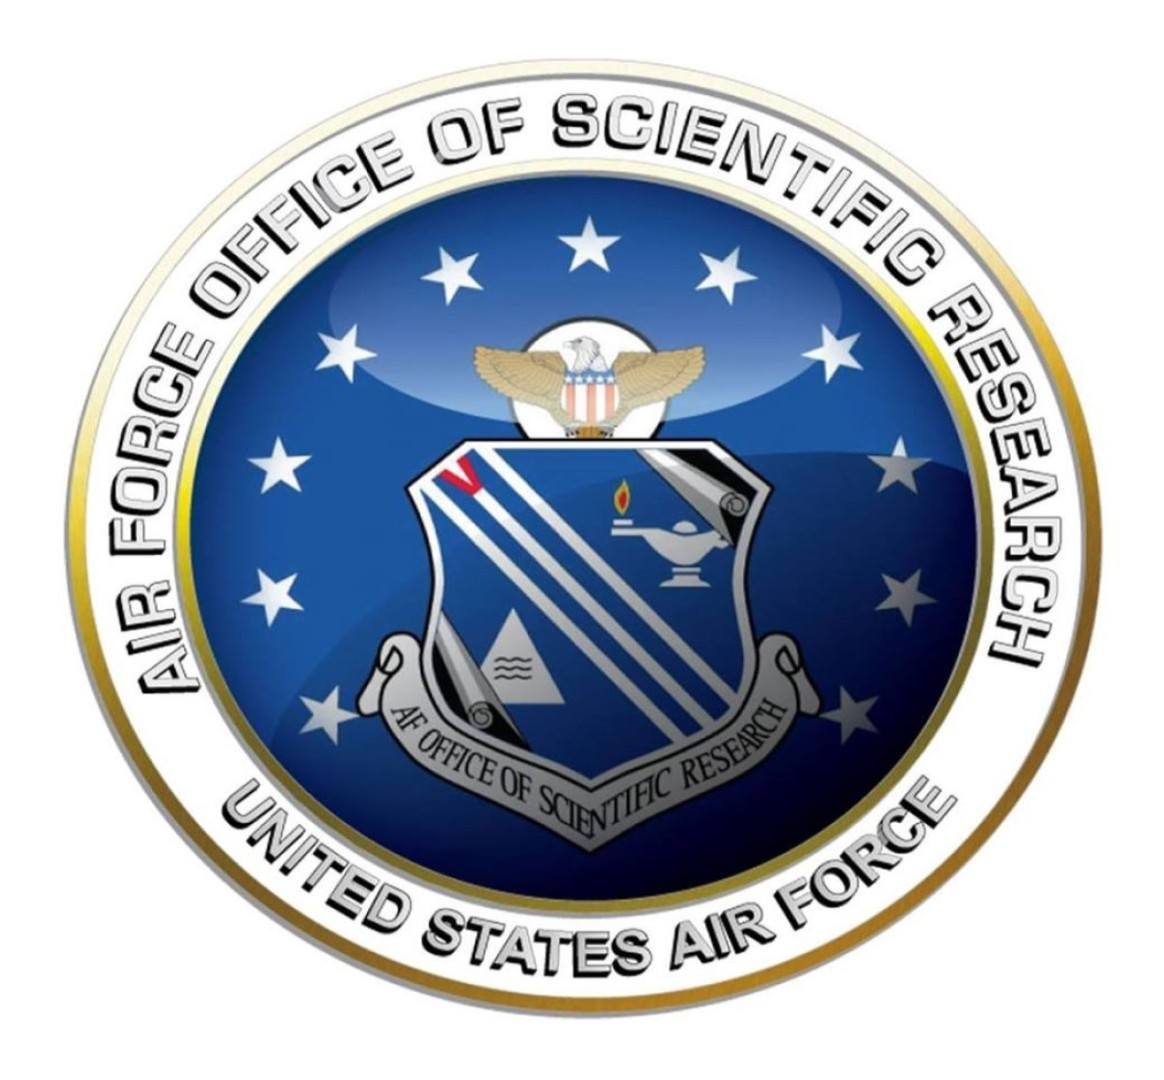 Air Force Office of Scientific Research, seal, logo